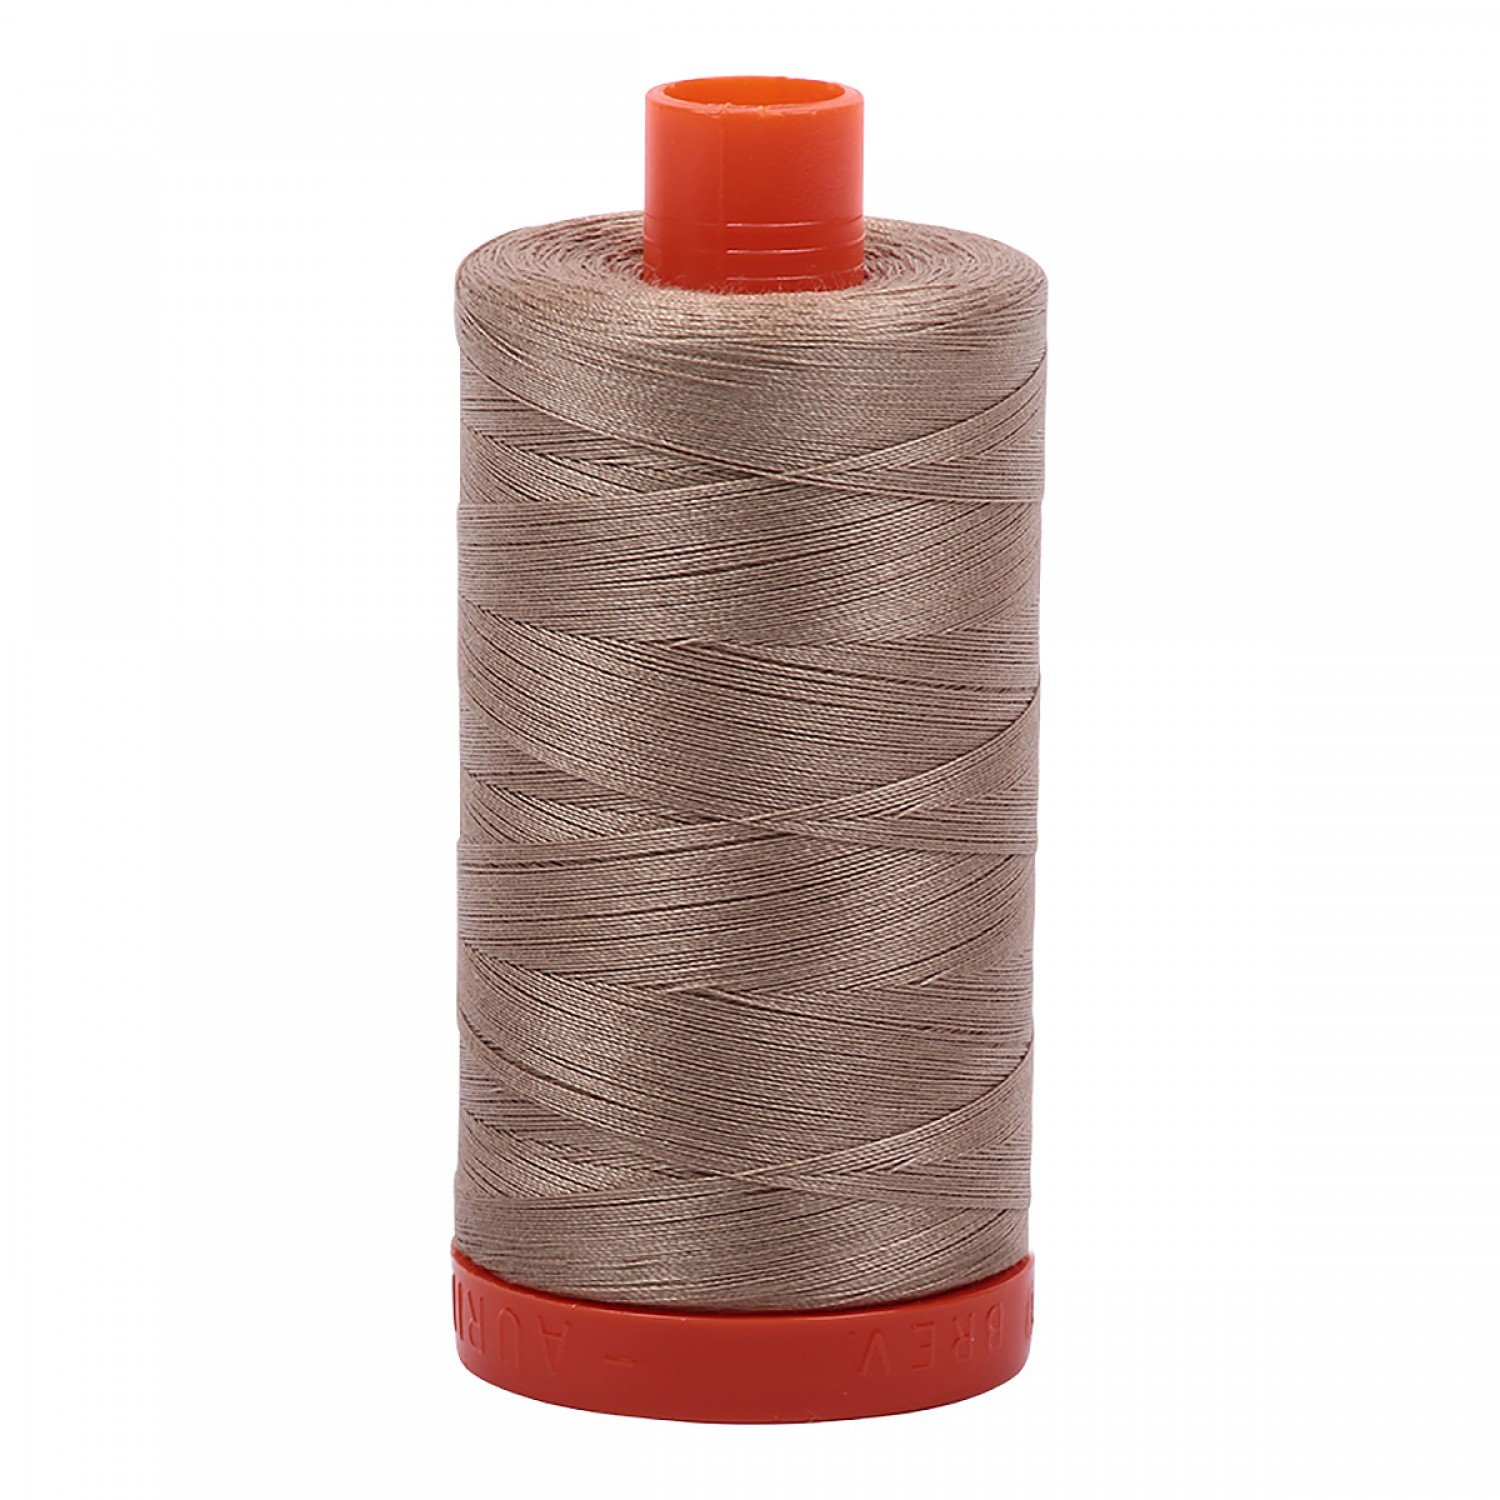 Aurifil Mako Cotton Thread 50 wt 1422 yds 2325 Linen